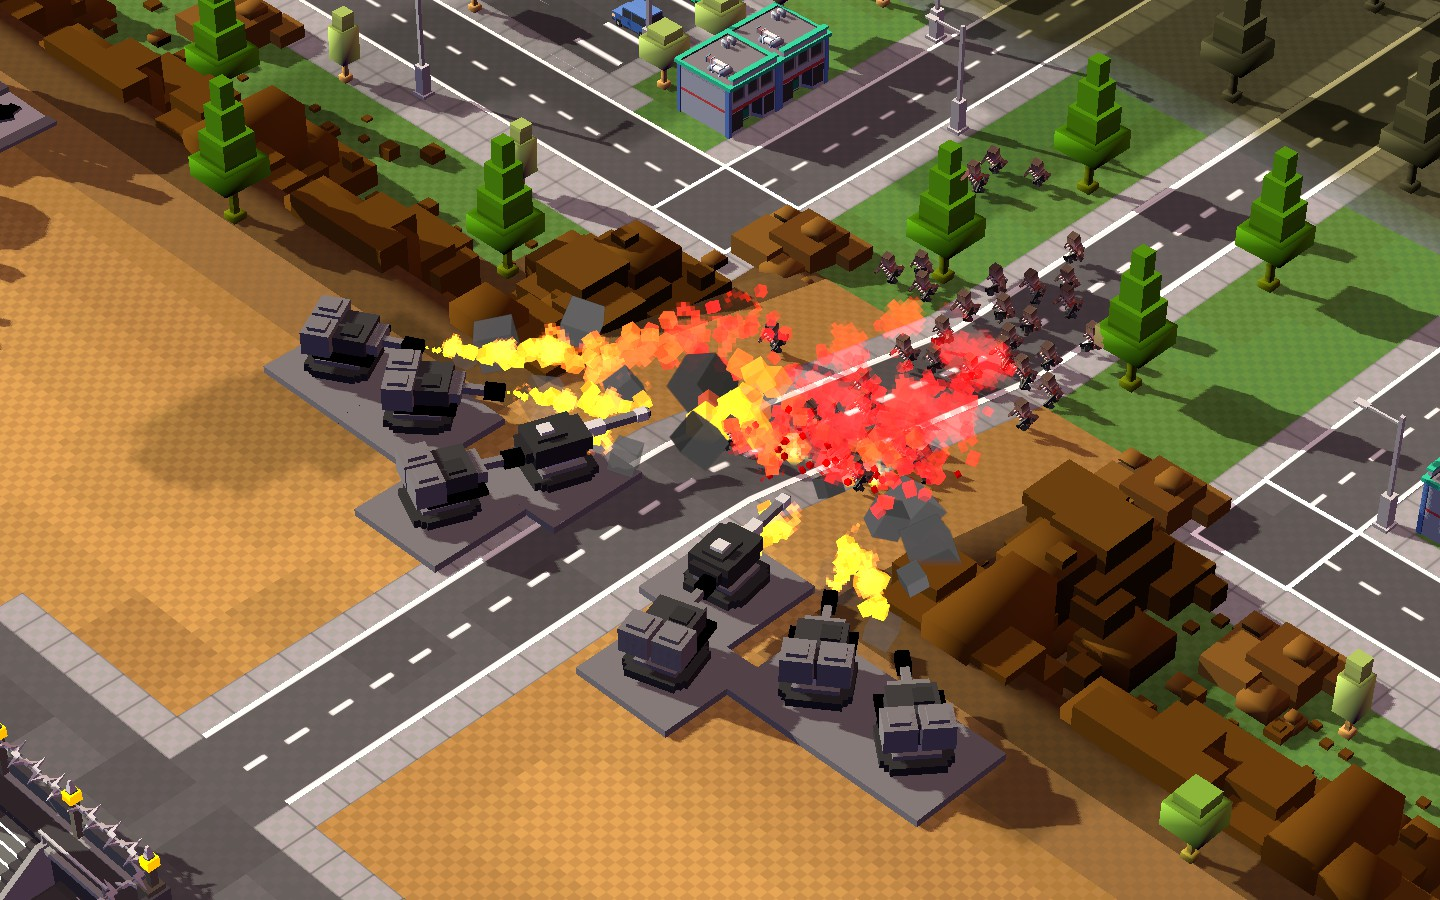 8-Bit Armies - Beta PC Review in Englisch | Game News